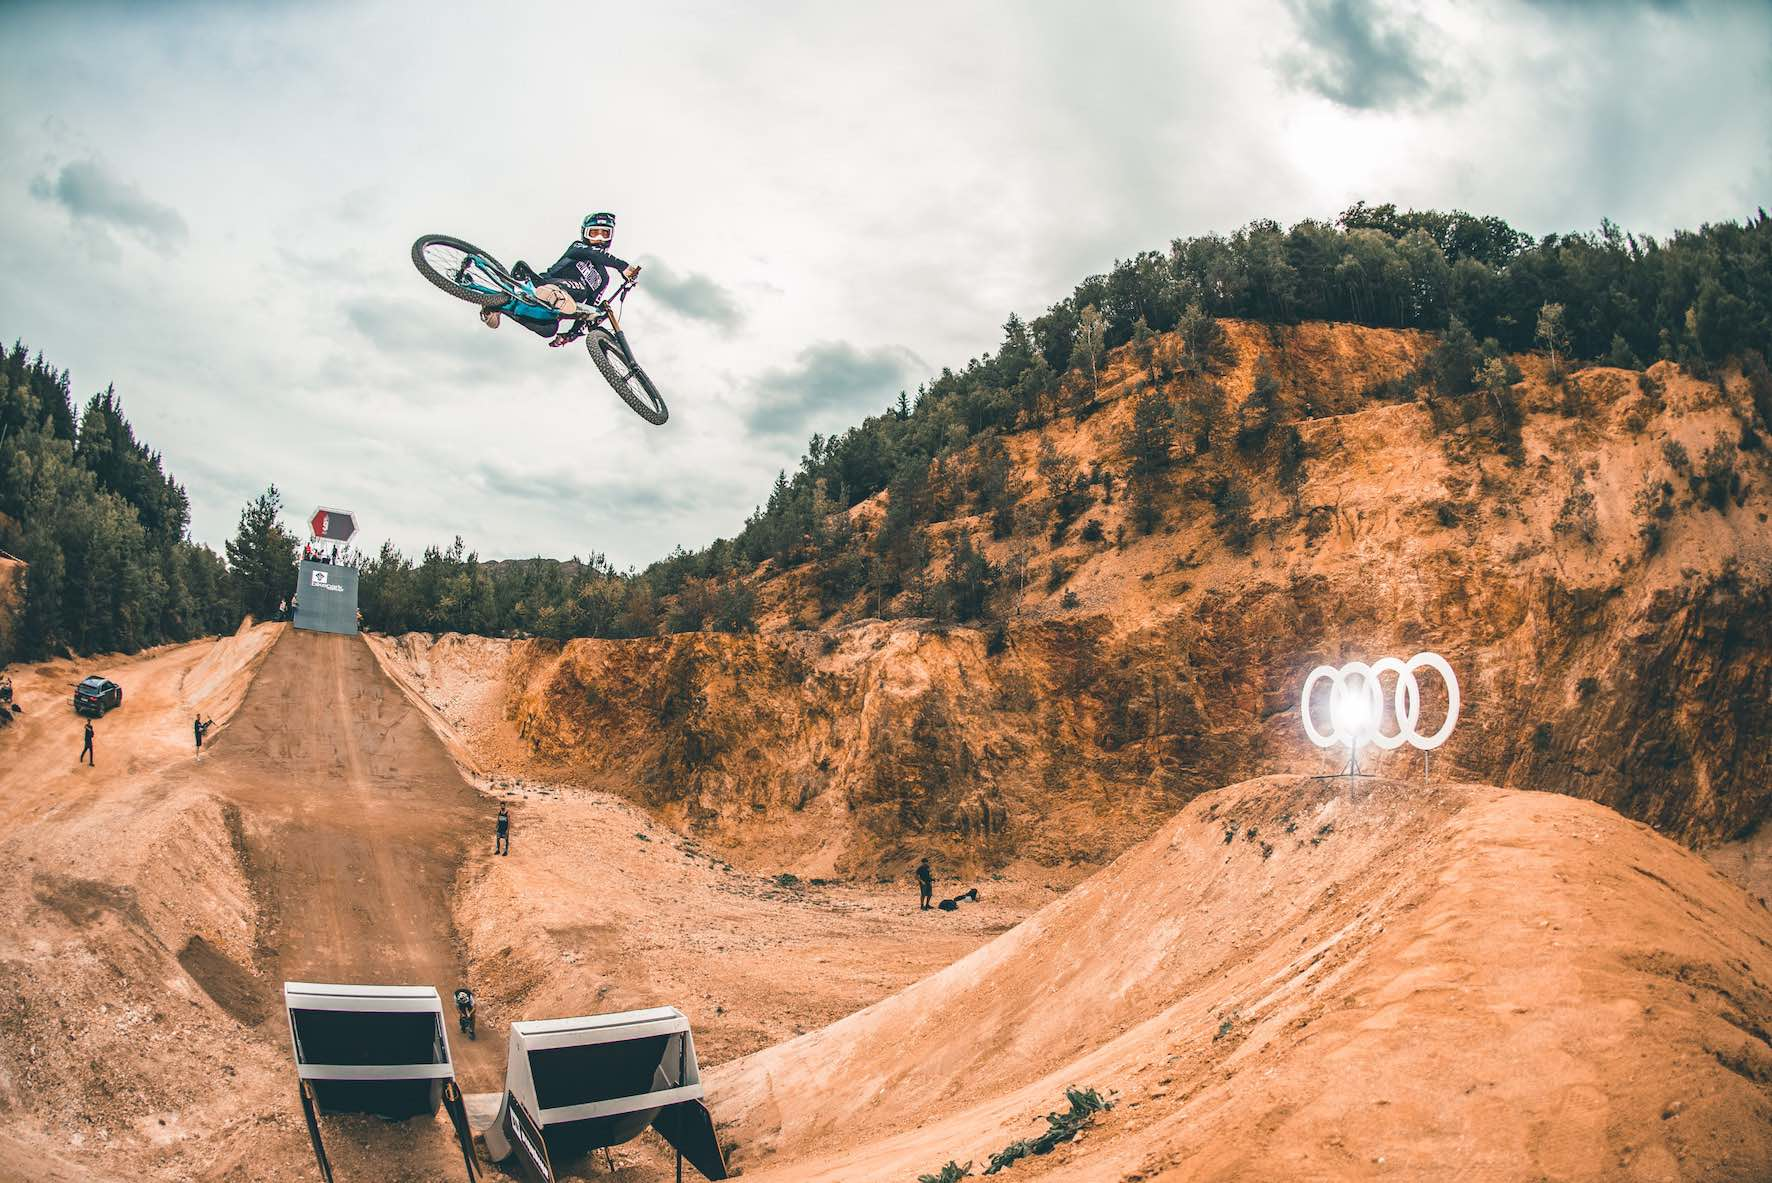 Interview with Bienvenido Aguado about the 2019 Audi Nines Slopestyle Mountain Bike event